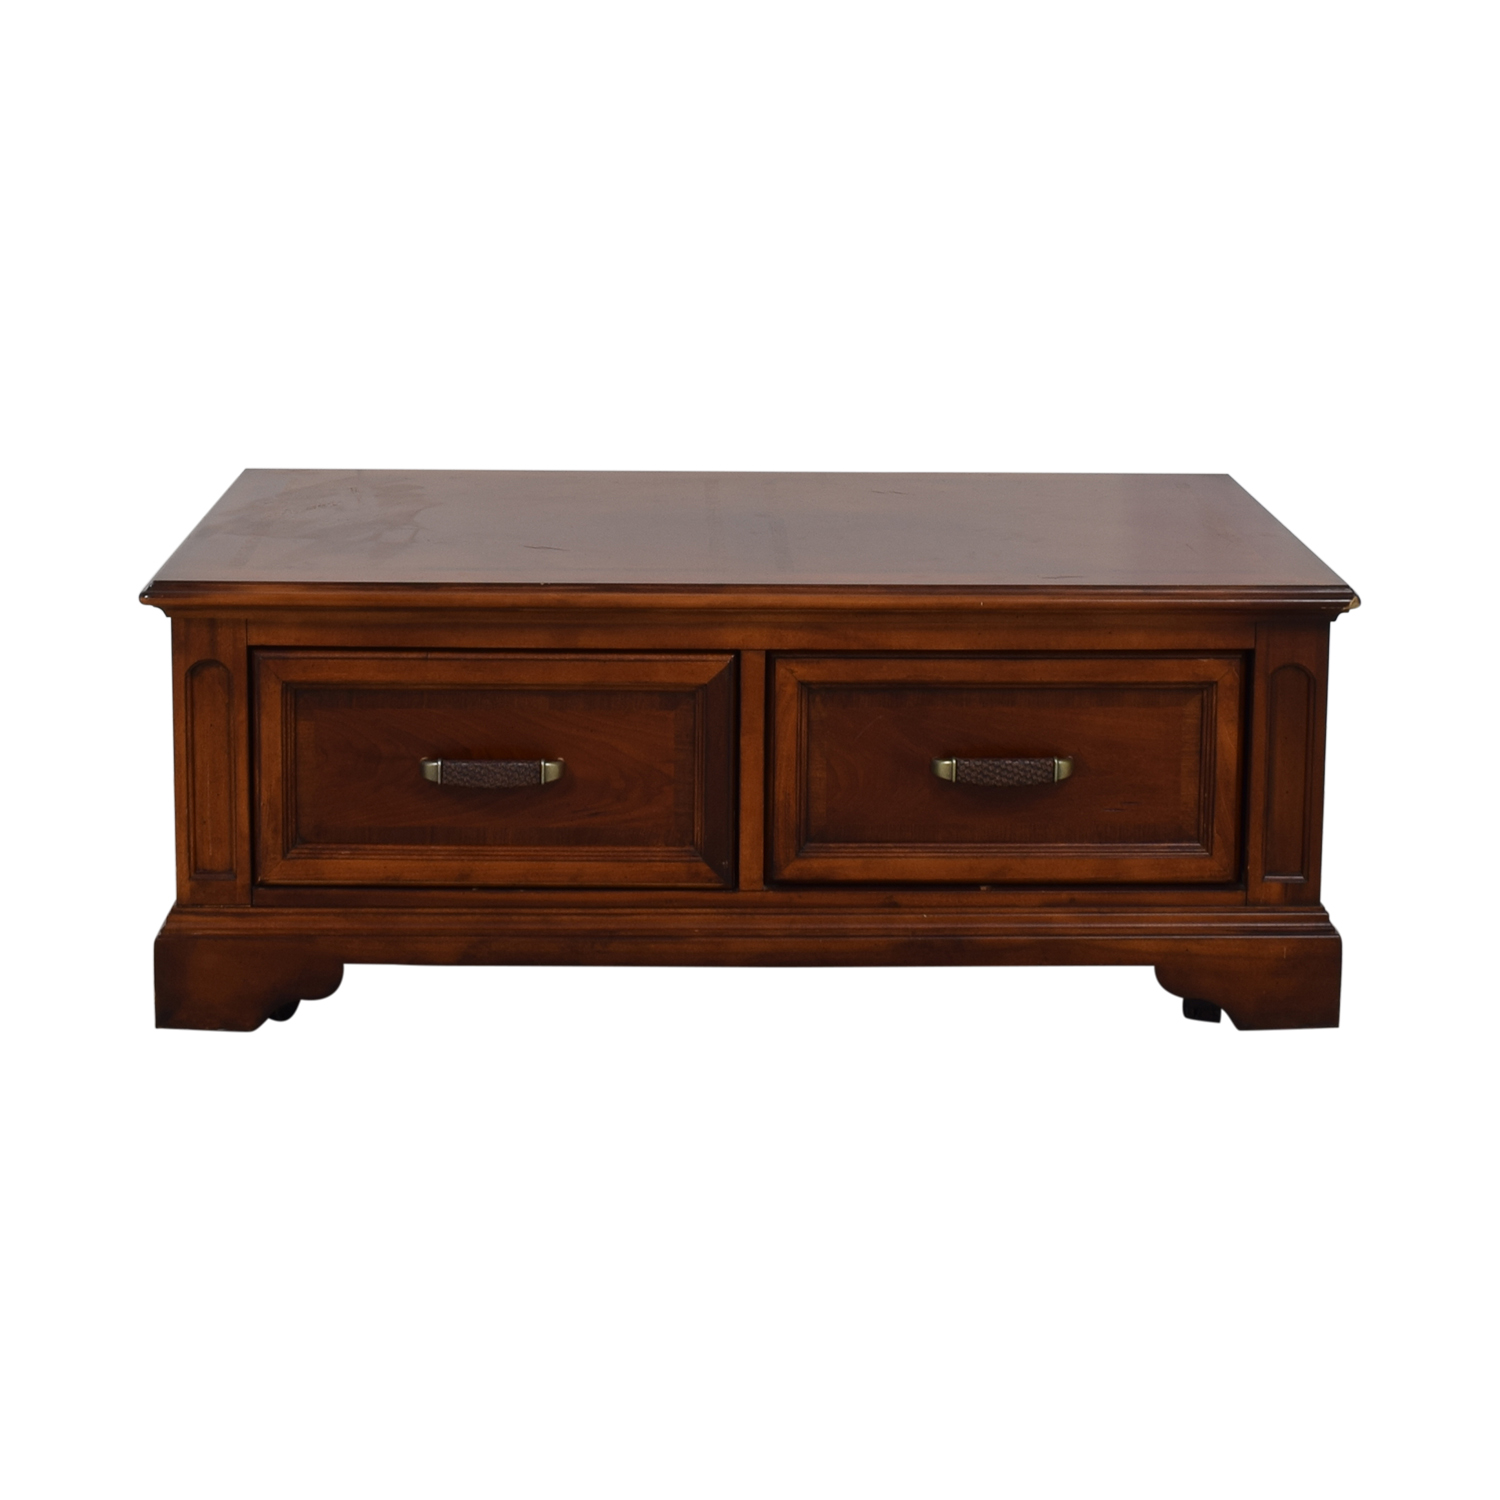 Raymour & Flanigan Raymour & Flanigan Brownstone Two-Drawer Coffee Table Coffee Tables